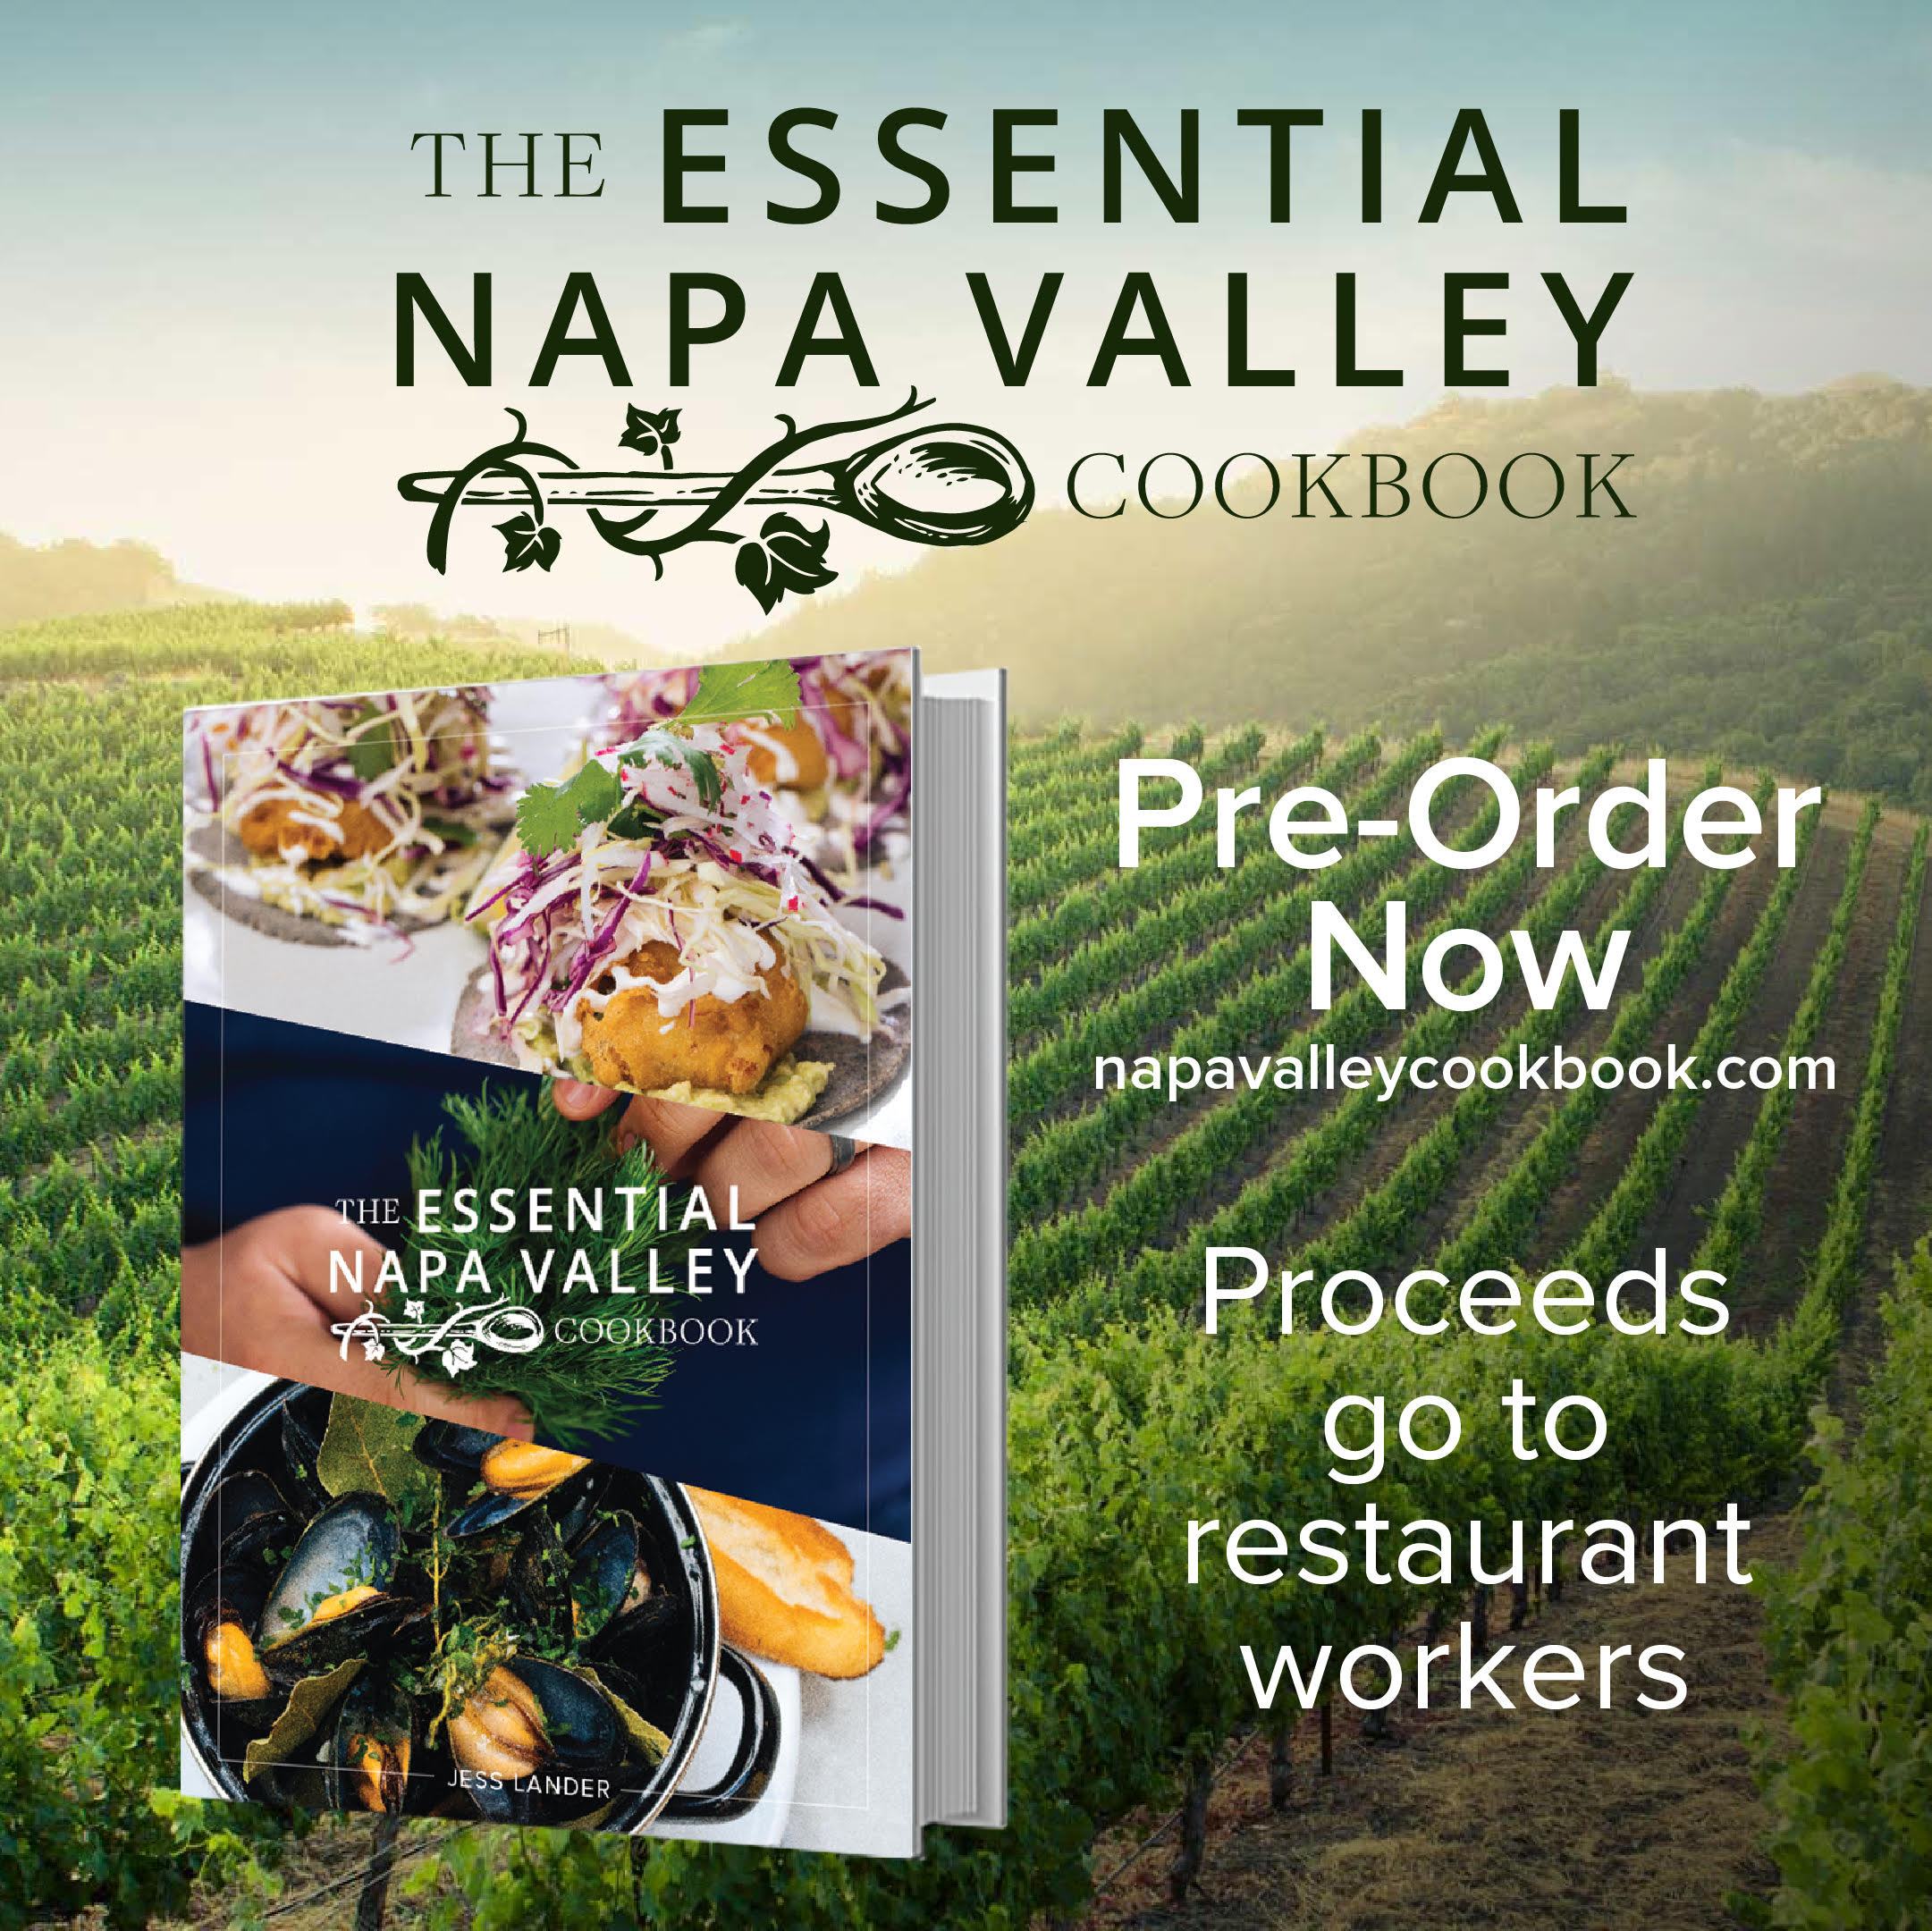 Why You Need The Essential Napa Valley Cookbook